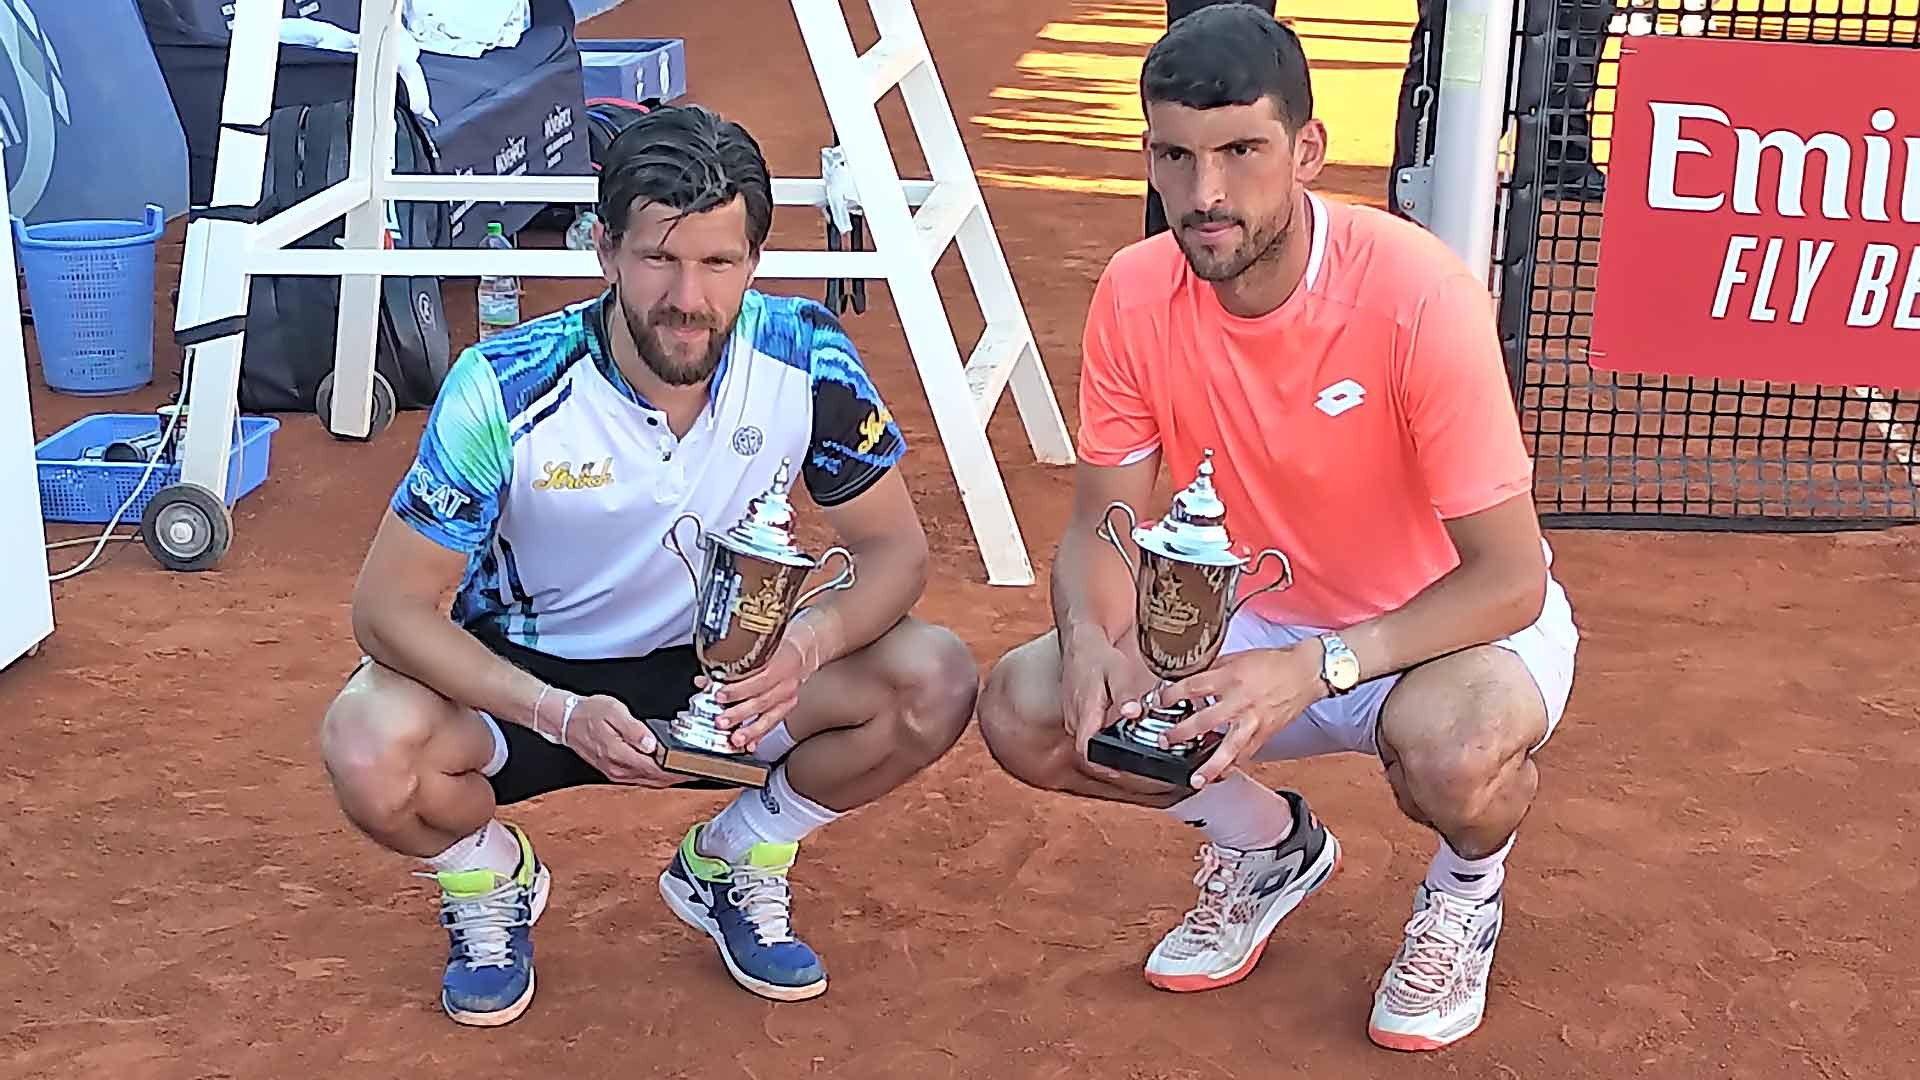 Jurgen Melzer and Franko Skugor win Marrakech